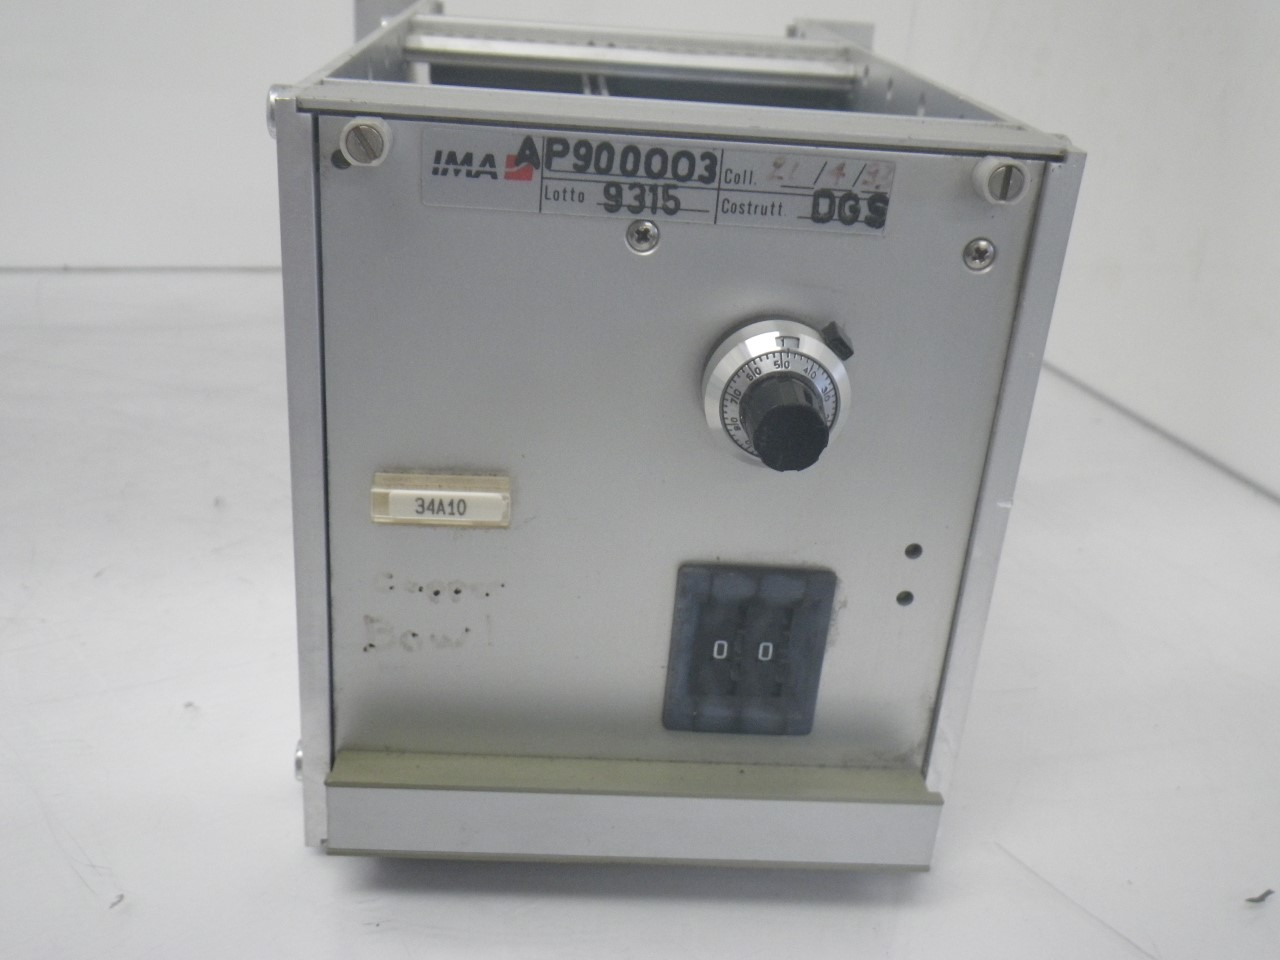 IMGP6890AP900003 Ima Control Module,Very Powerful and Very Useful Module(Used Tested)  (26)